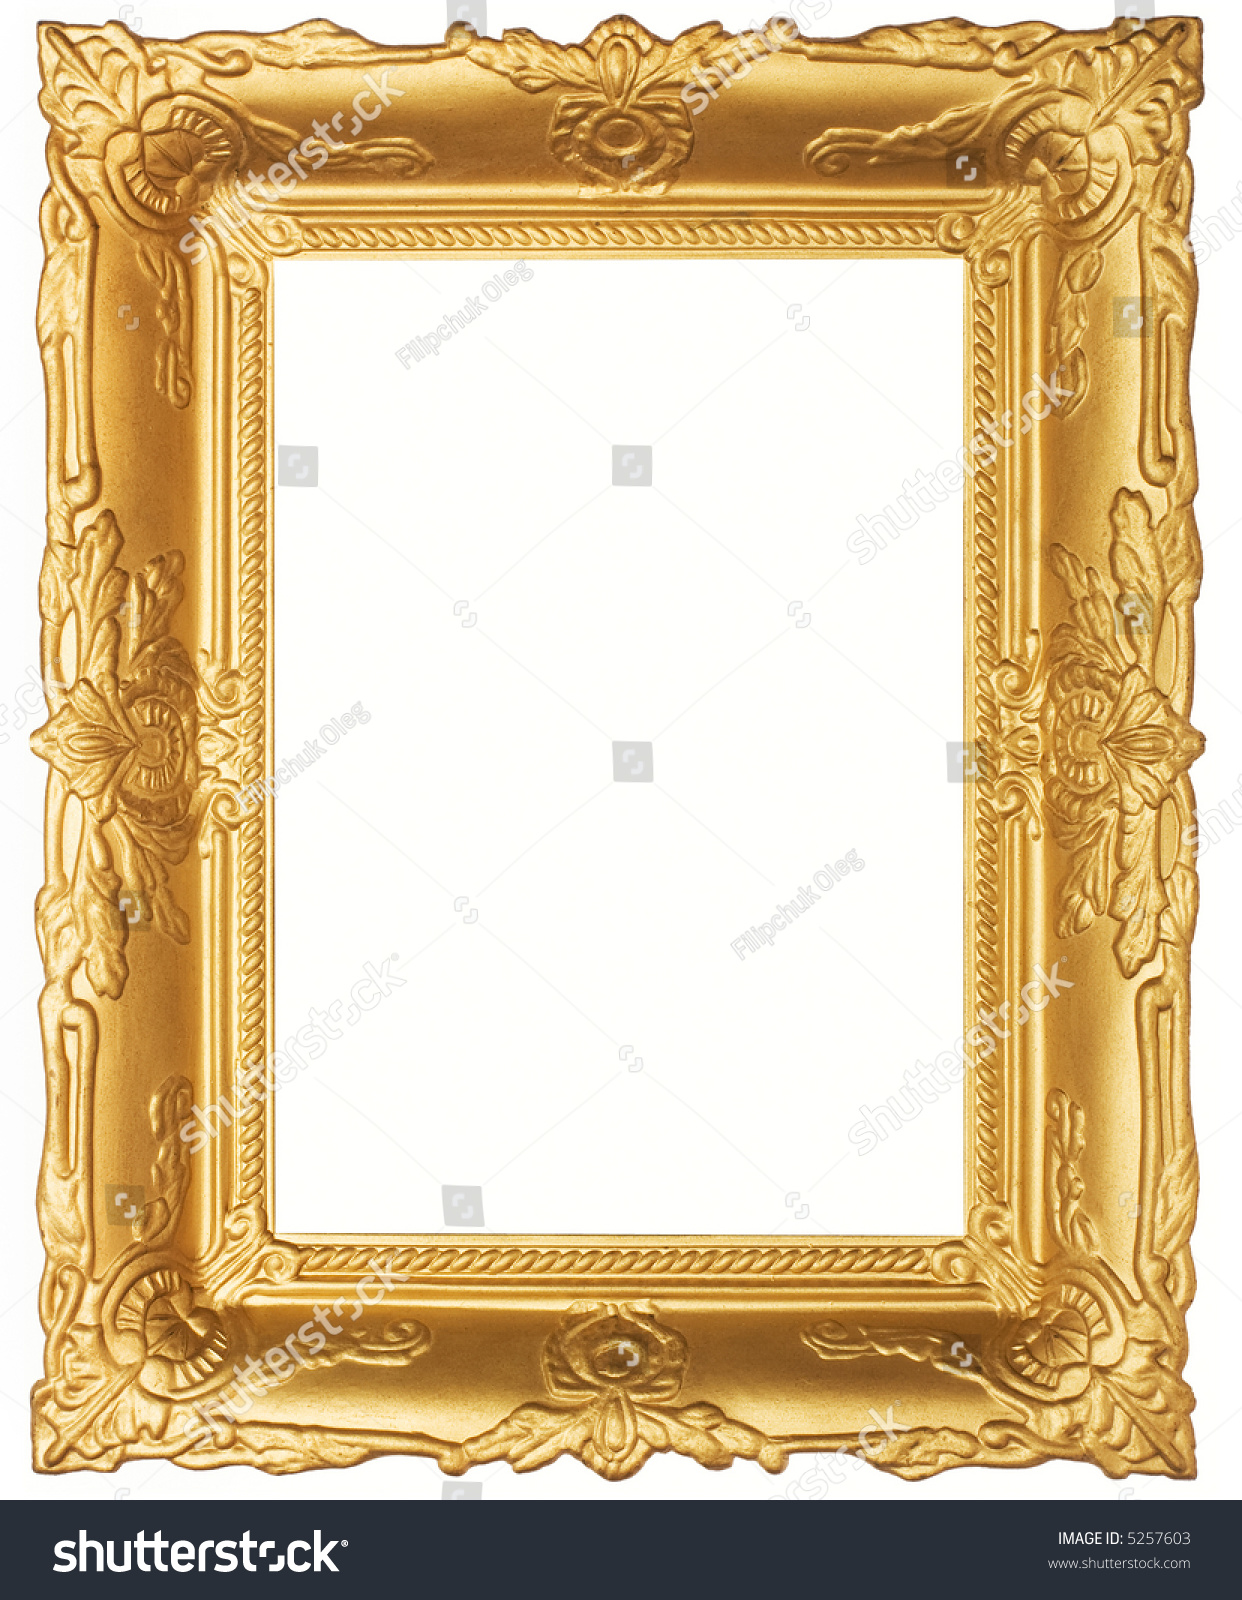 Old beautiful ornated golden antique frame. Isolated on white